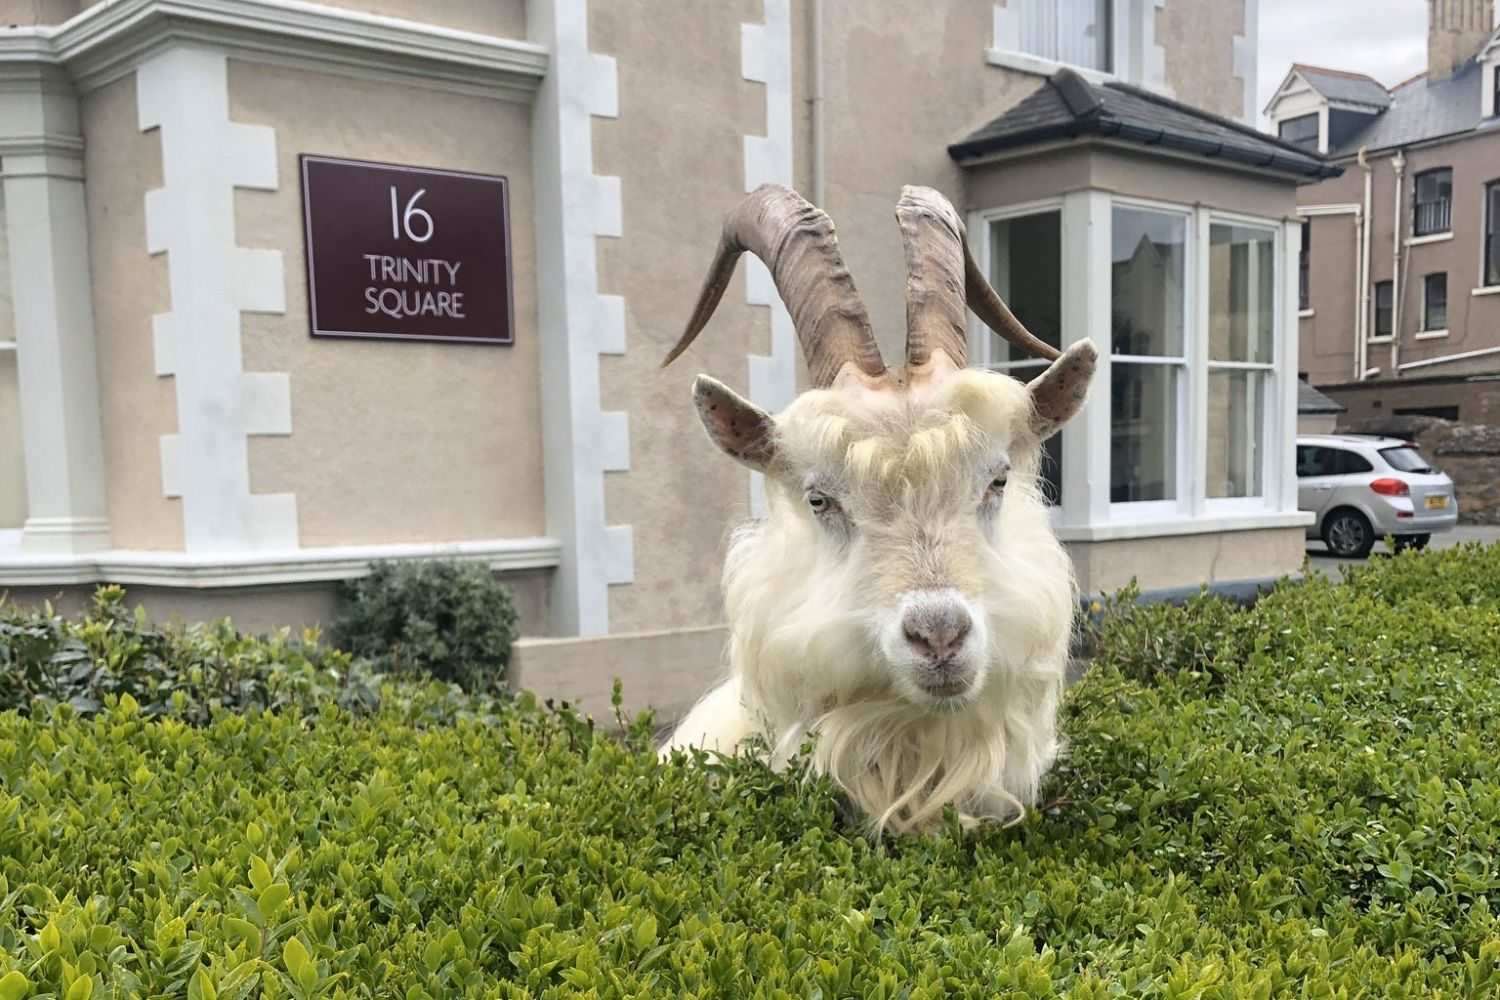 Mountain Goats Invade Welsh Town of Llandudno